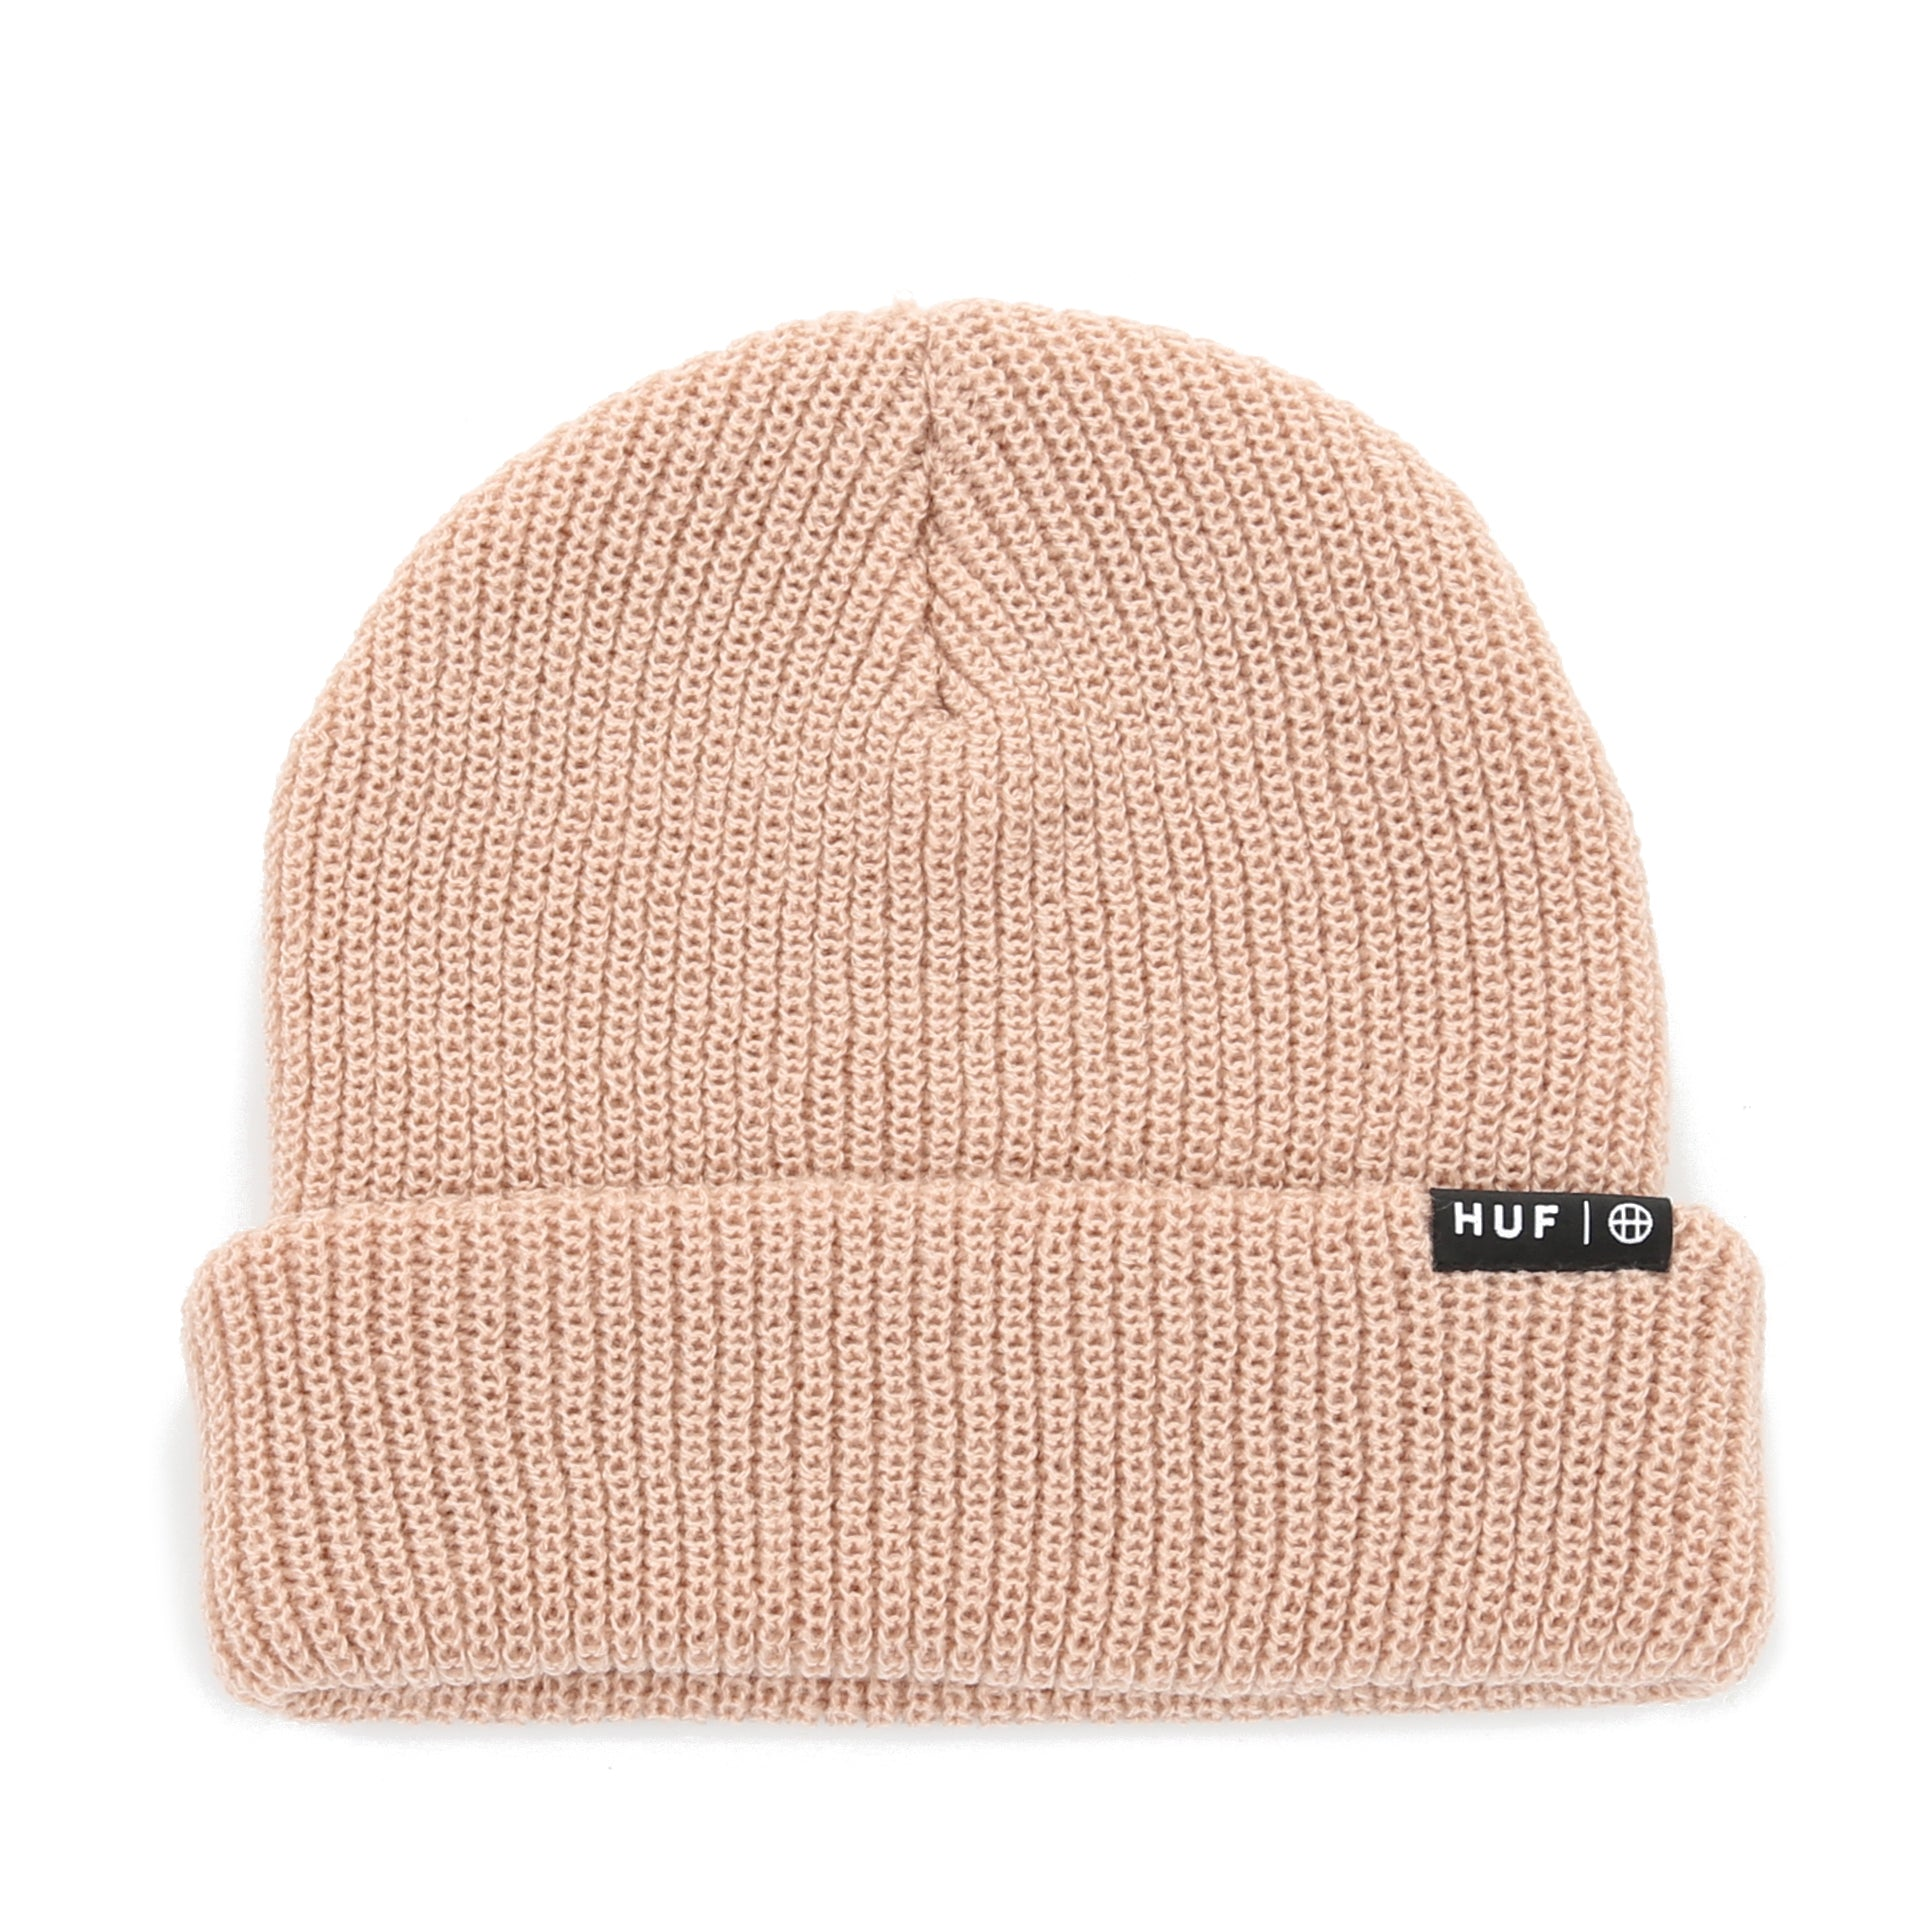 Huf Usual Beanie - Dusty Pink - New Star 05b9d668eb9